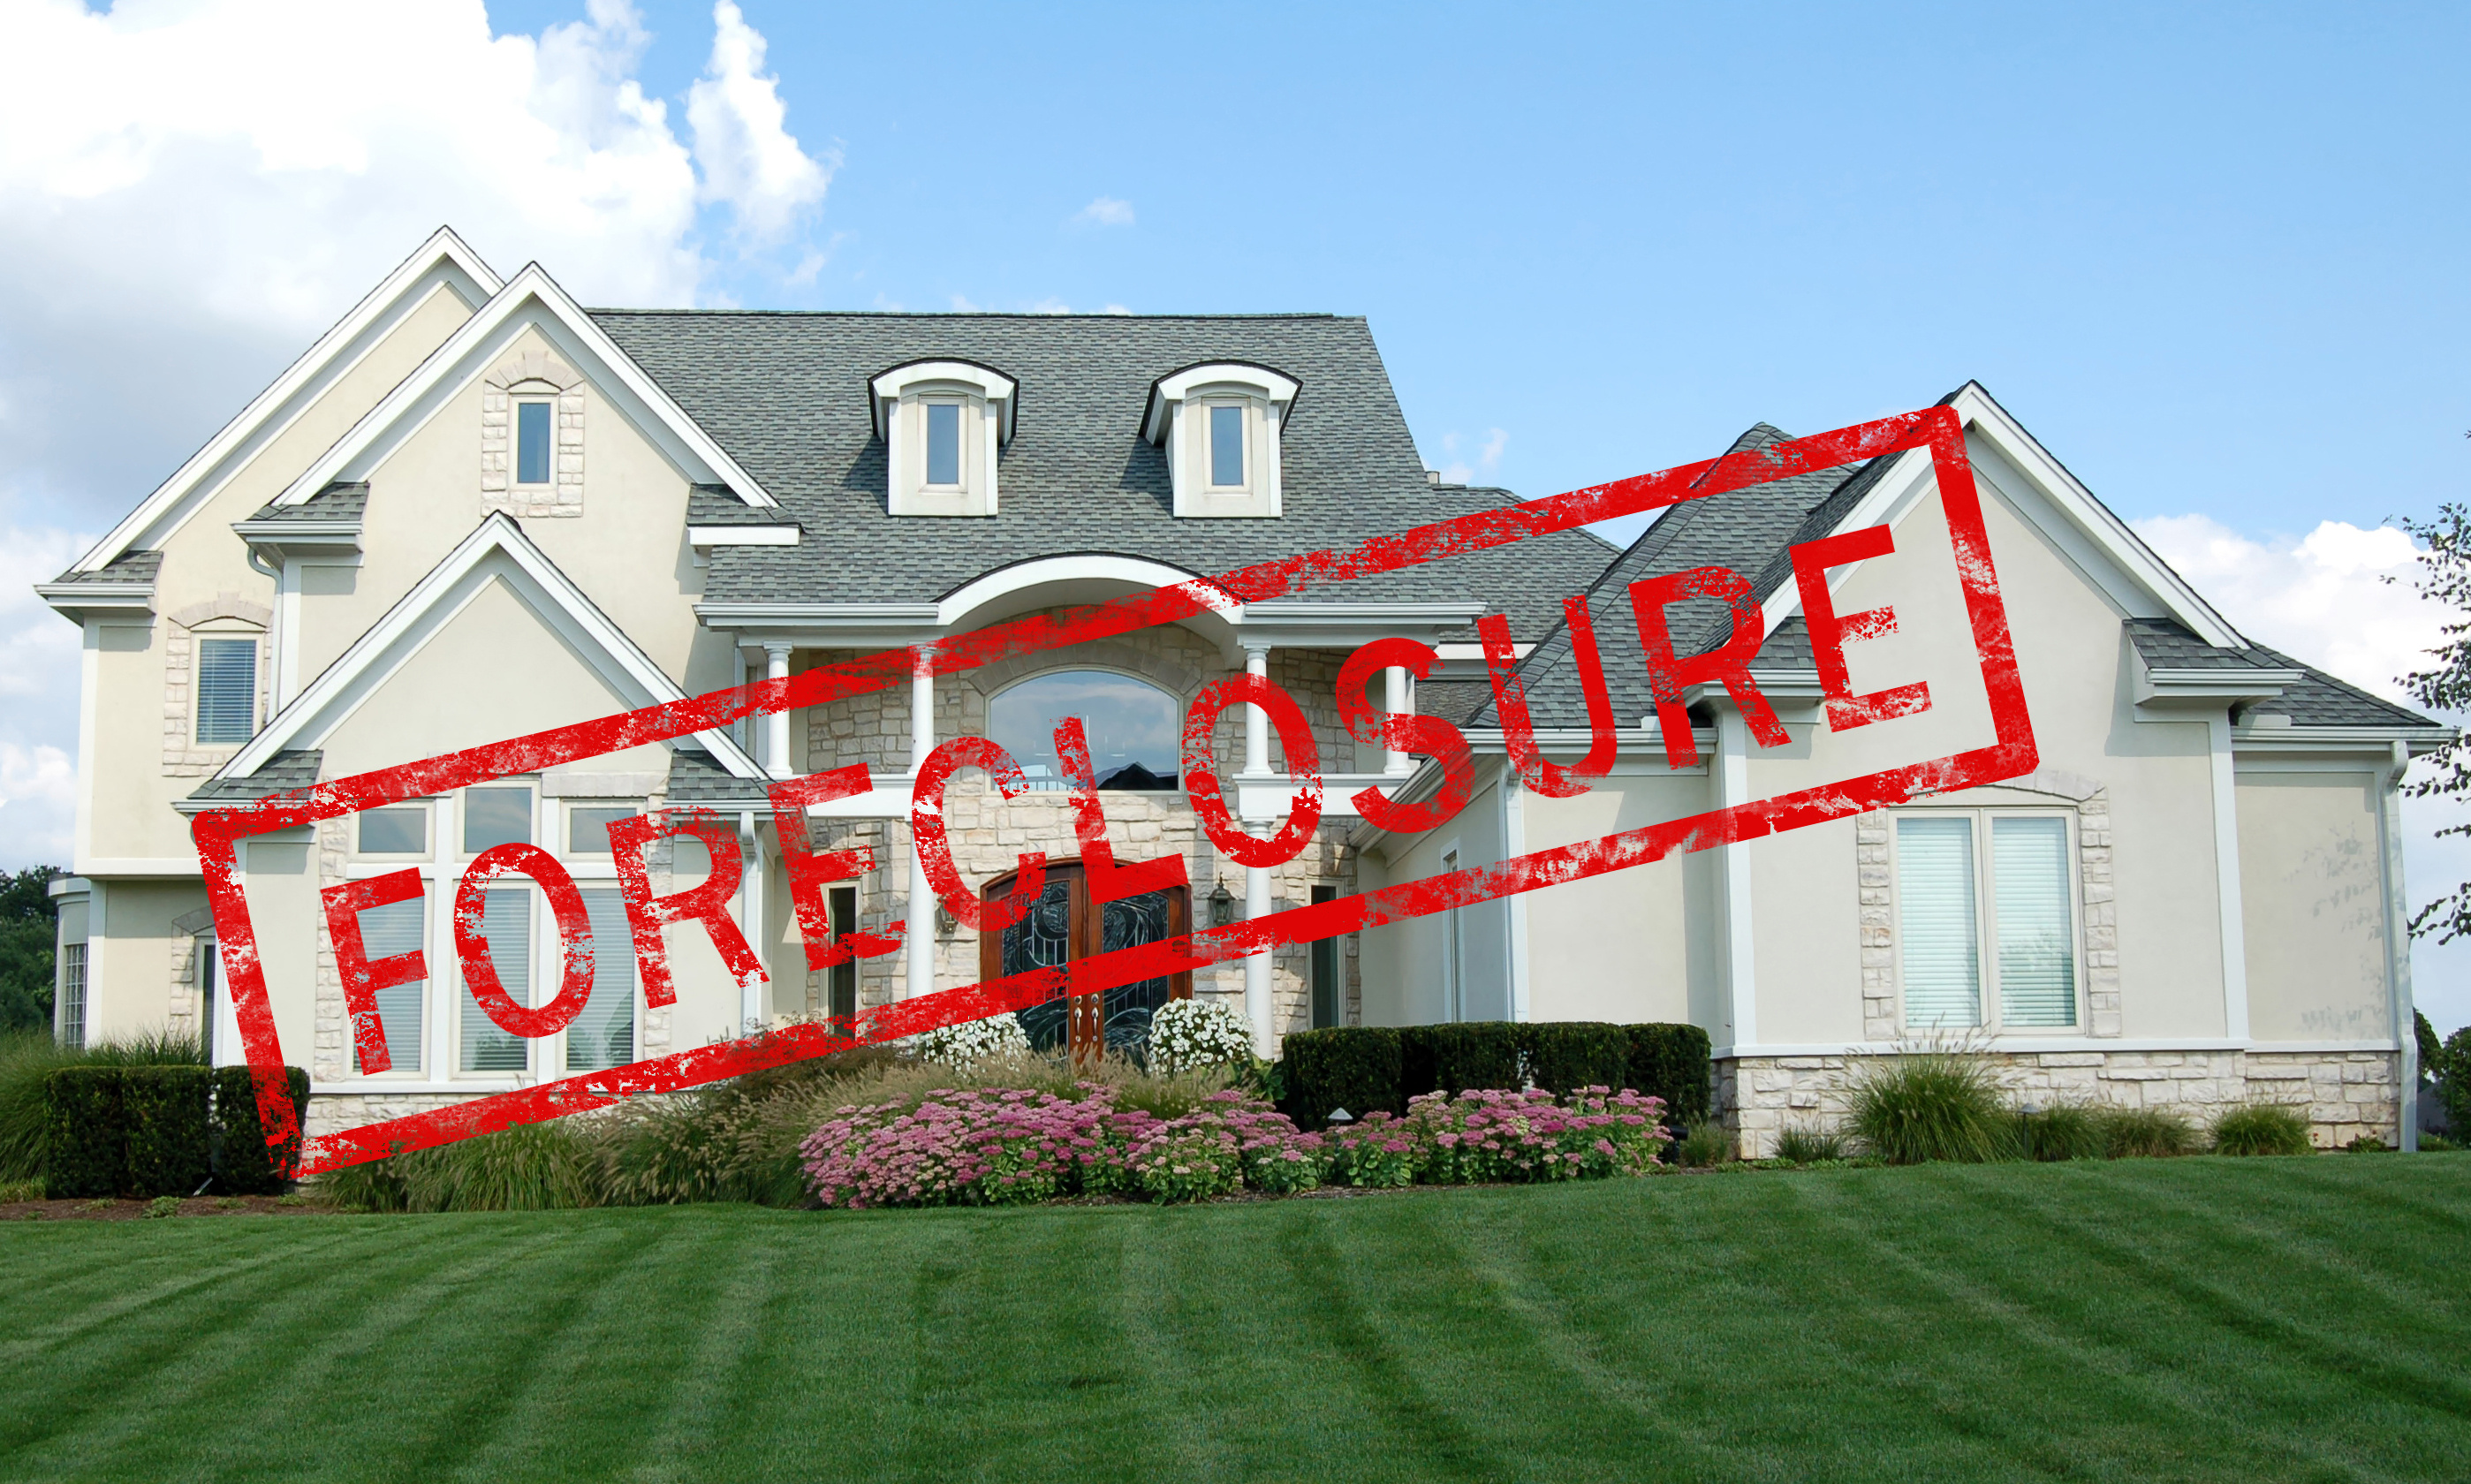 Call Savery Appraisal Services Inc. to discuss appraisals for Tulare foreclosures